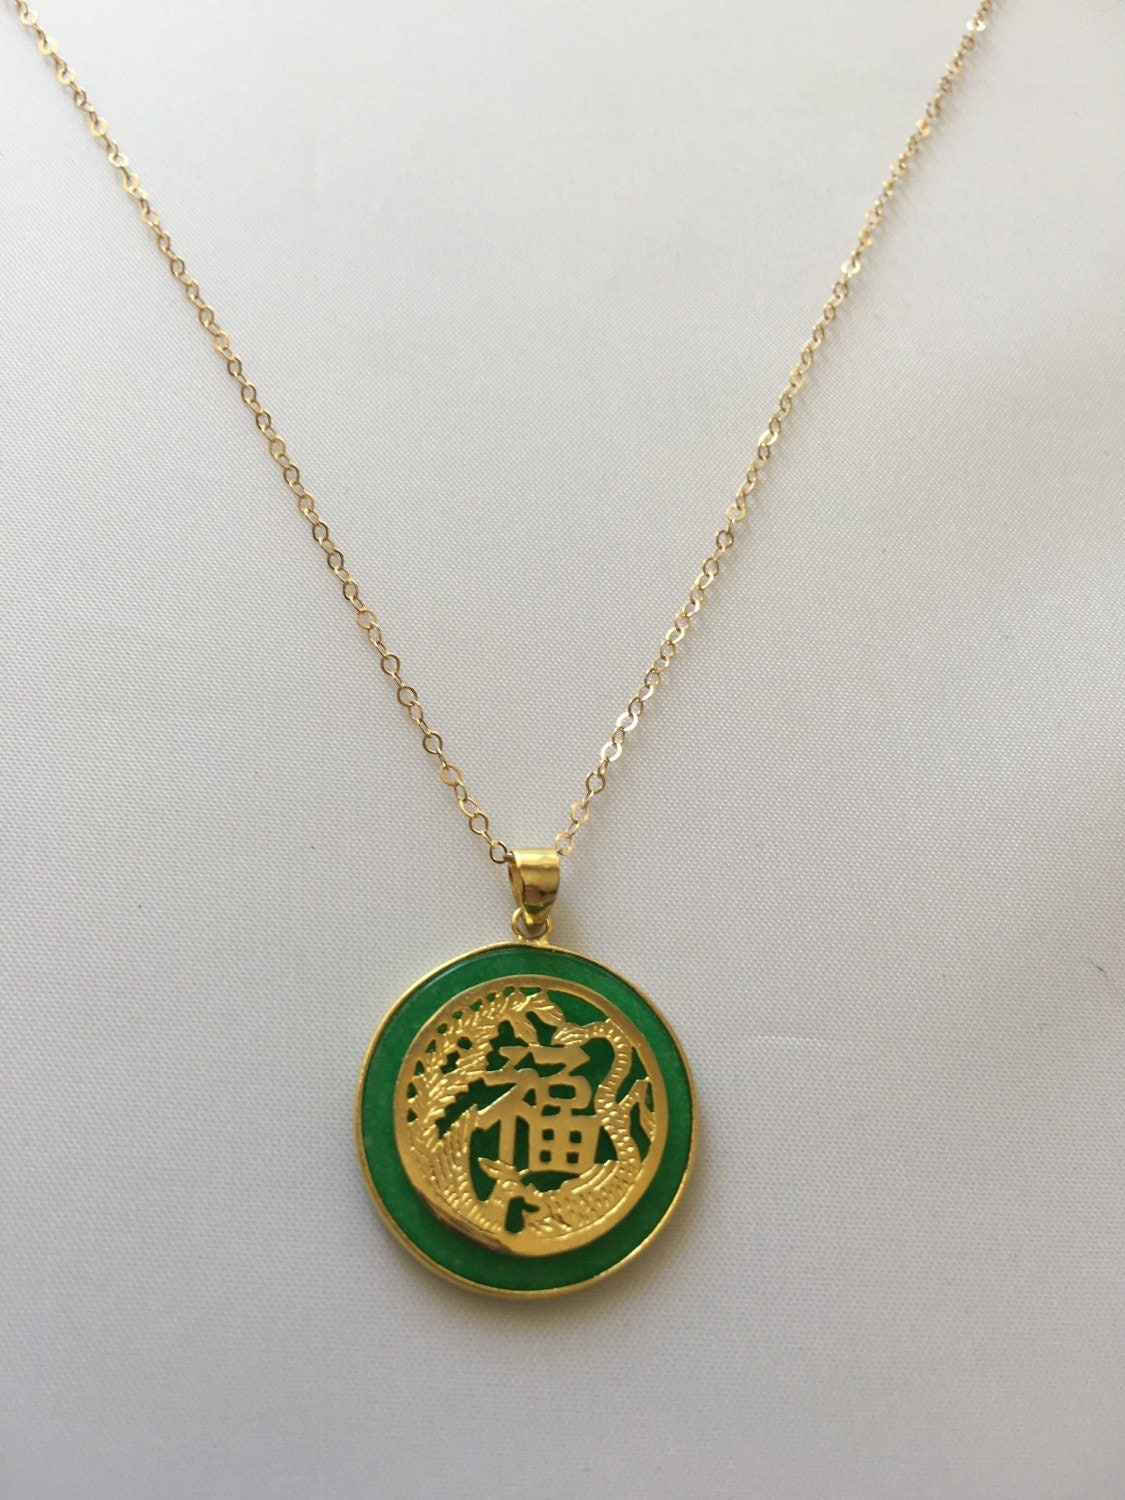 Jade pendant necklace gemstone jewelry chinese charms for Pictures of jade jewelry